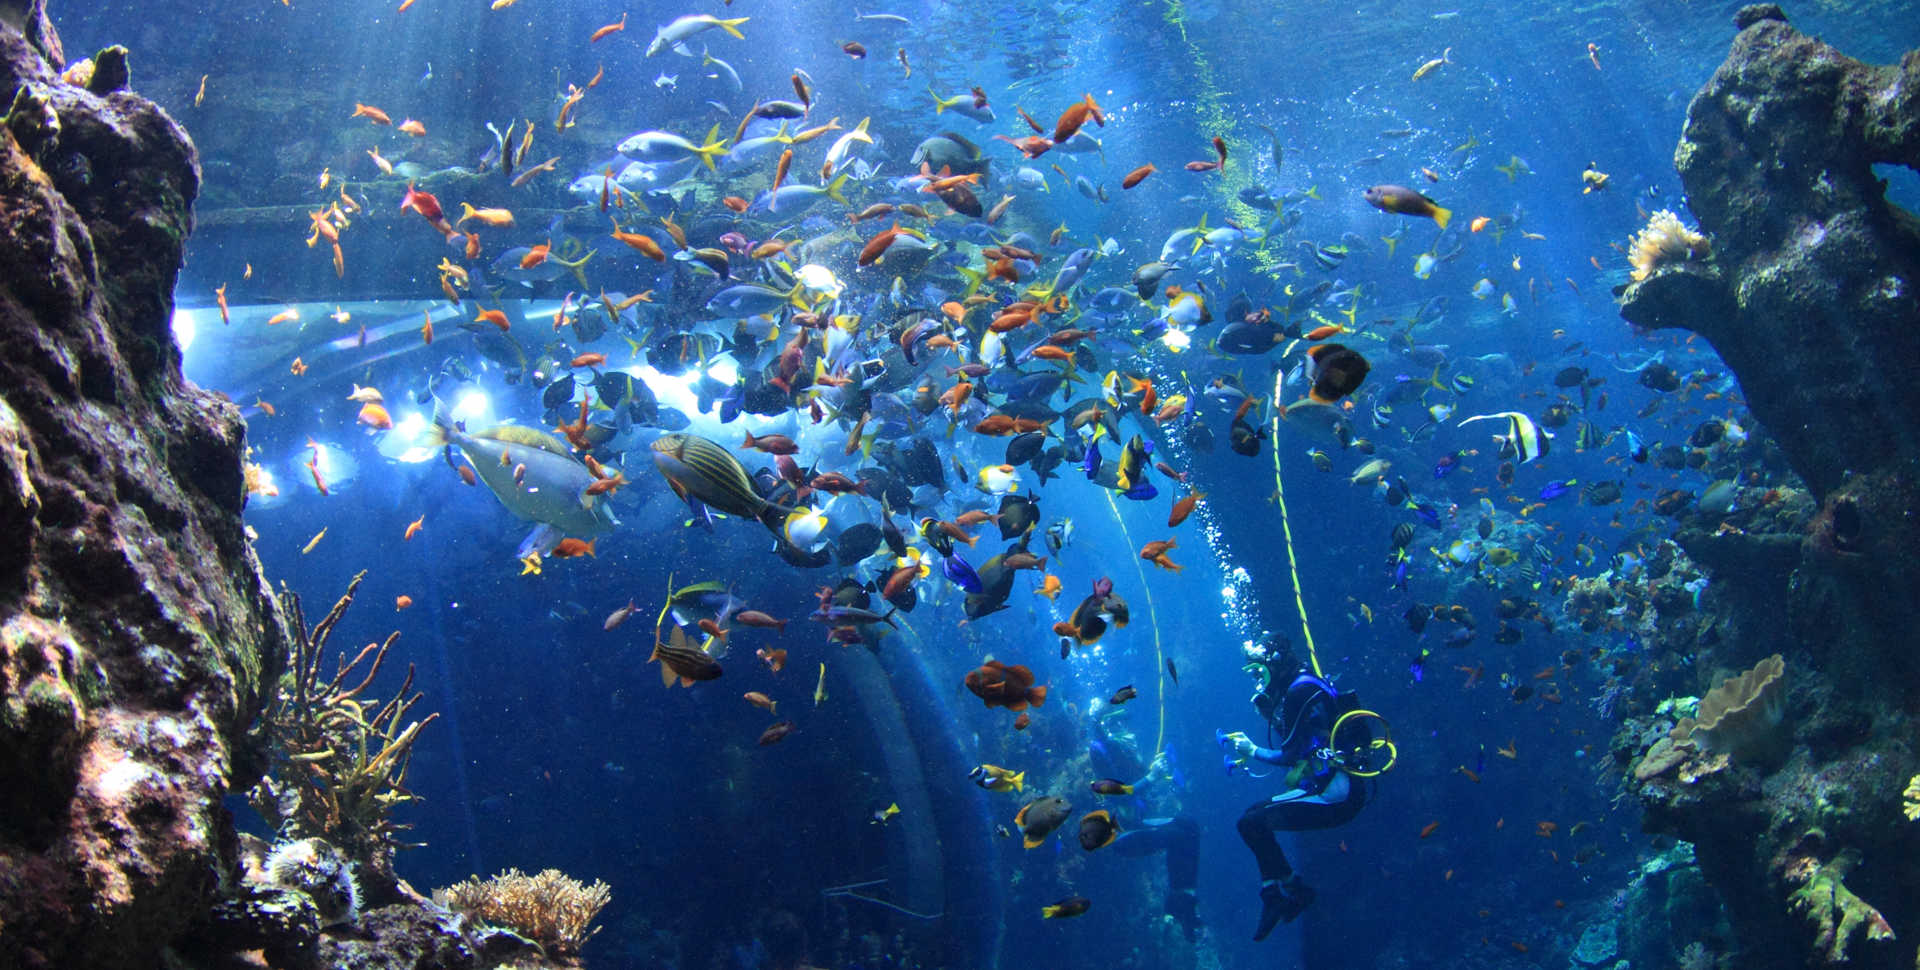 A scuba diver in the Phlippine Coral Reef exhibit.